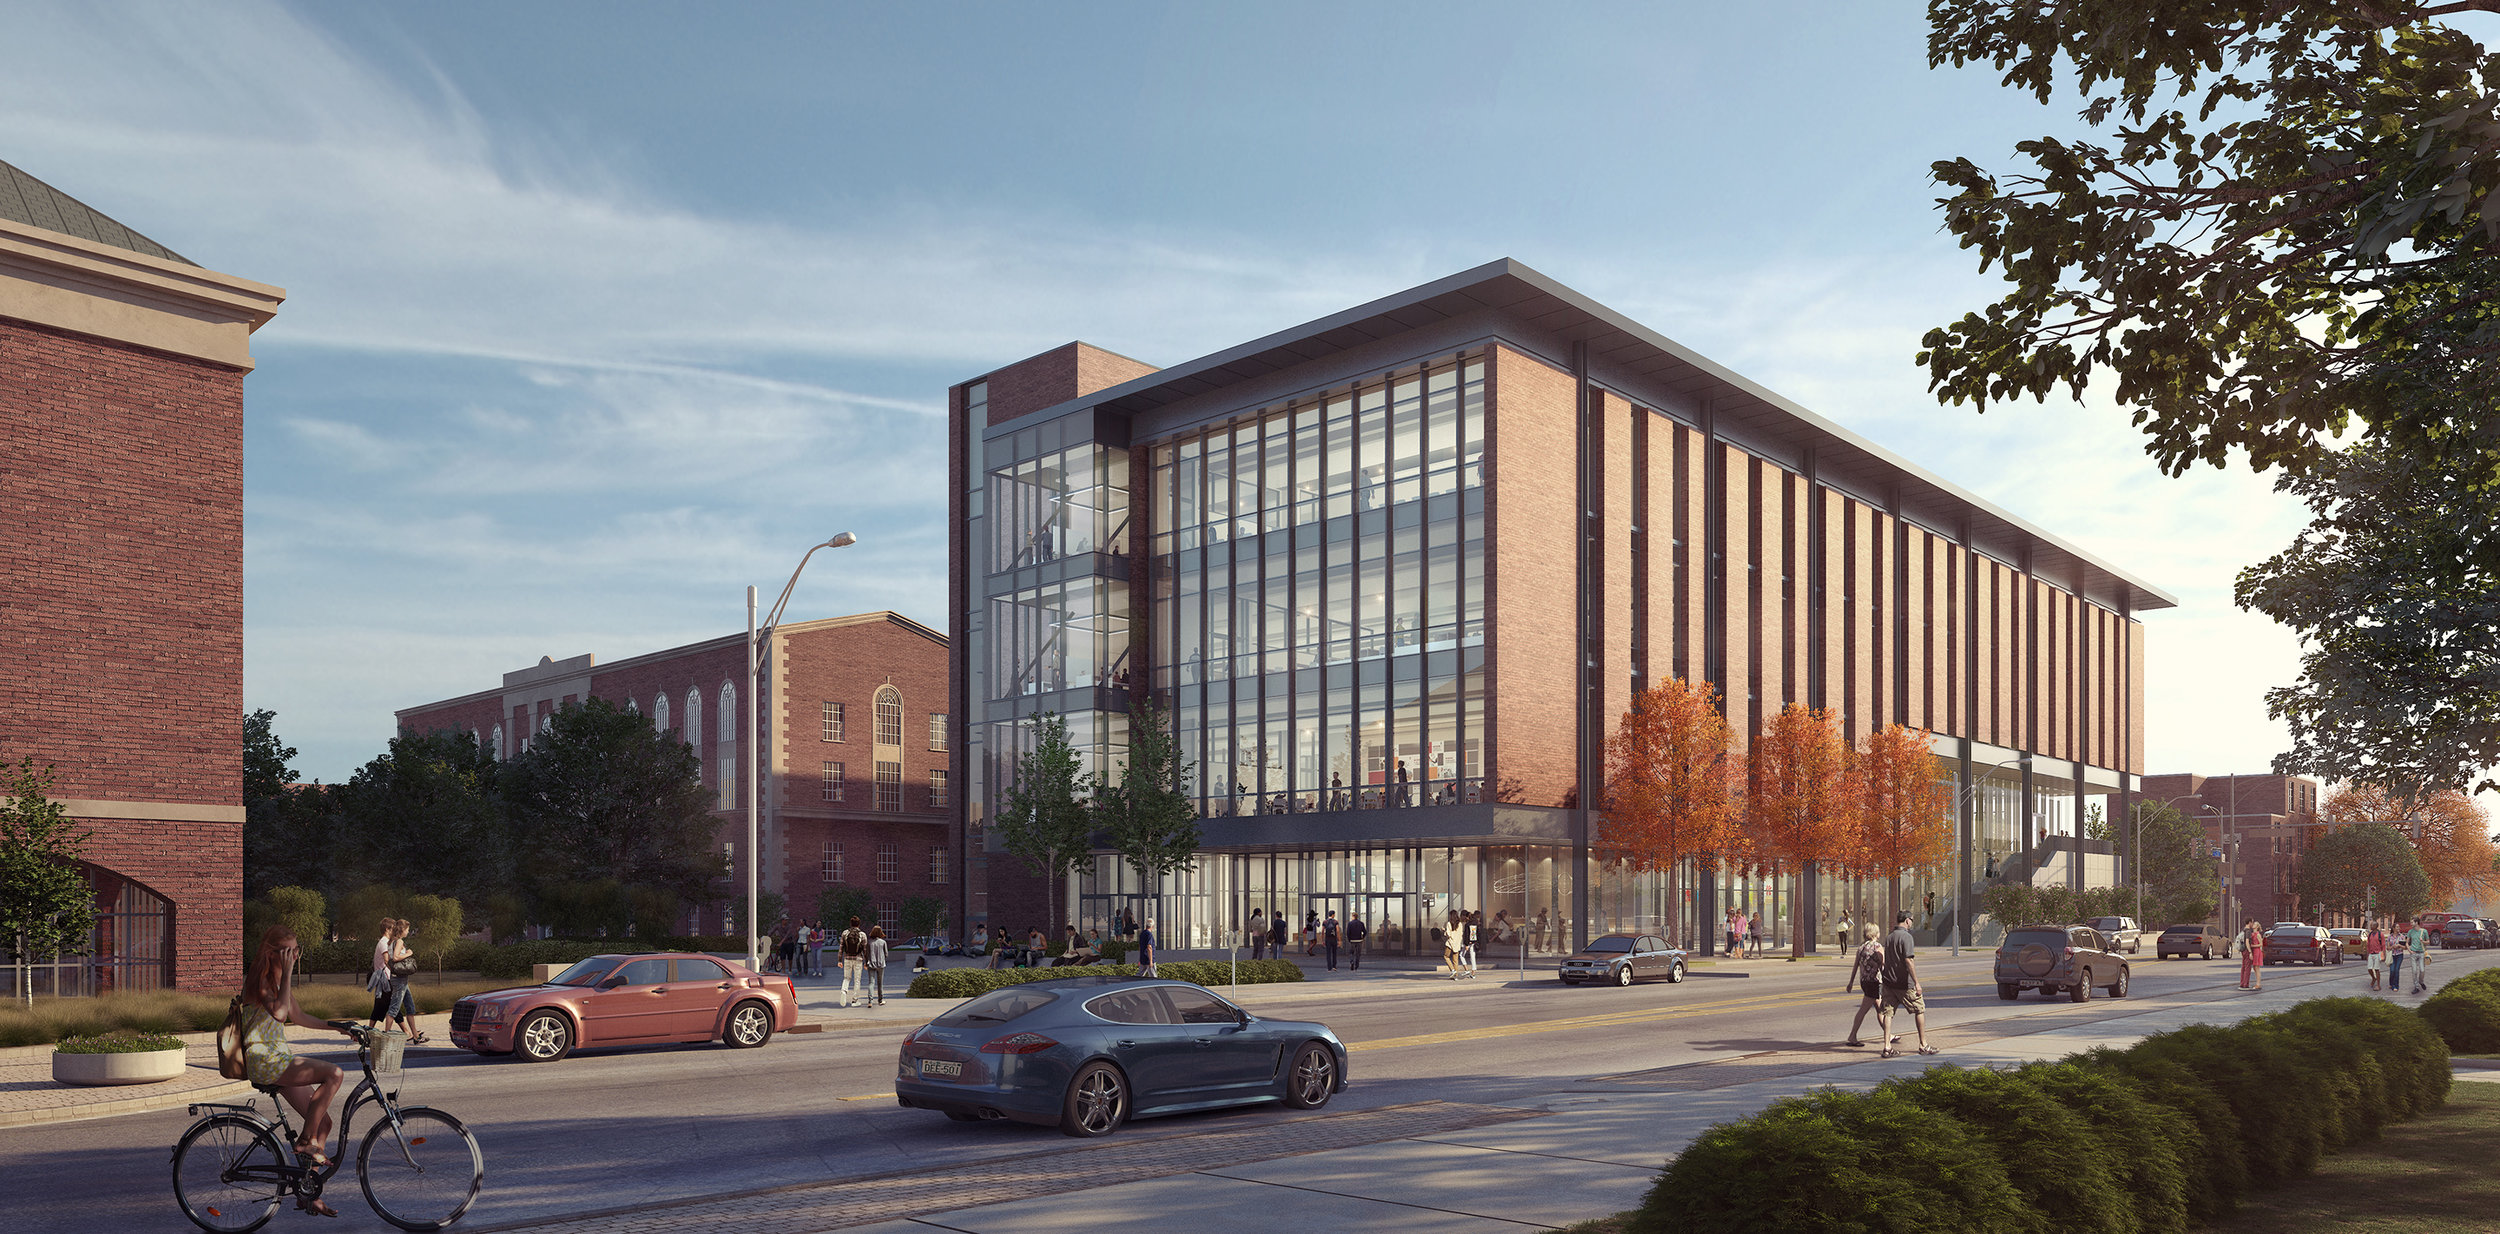 ILLINOIS NEWS BUREAU   Campus Instructional Facility Project incorporates green design, public-private partnership   April 10, 2019